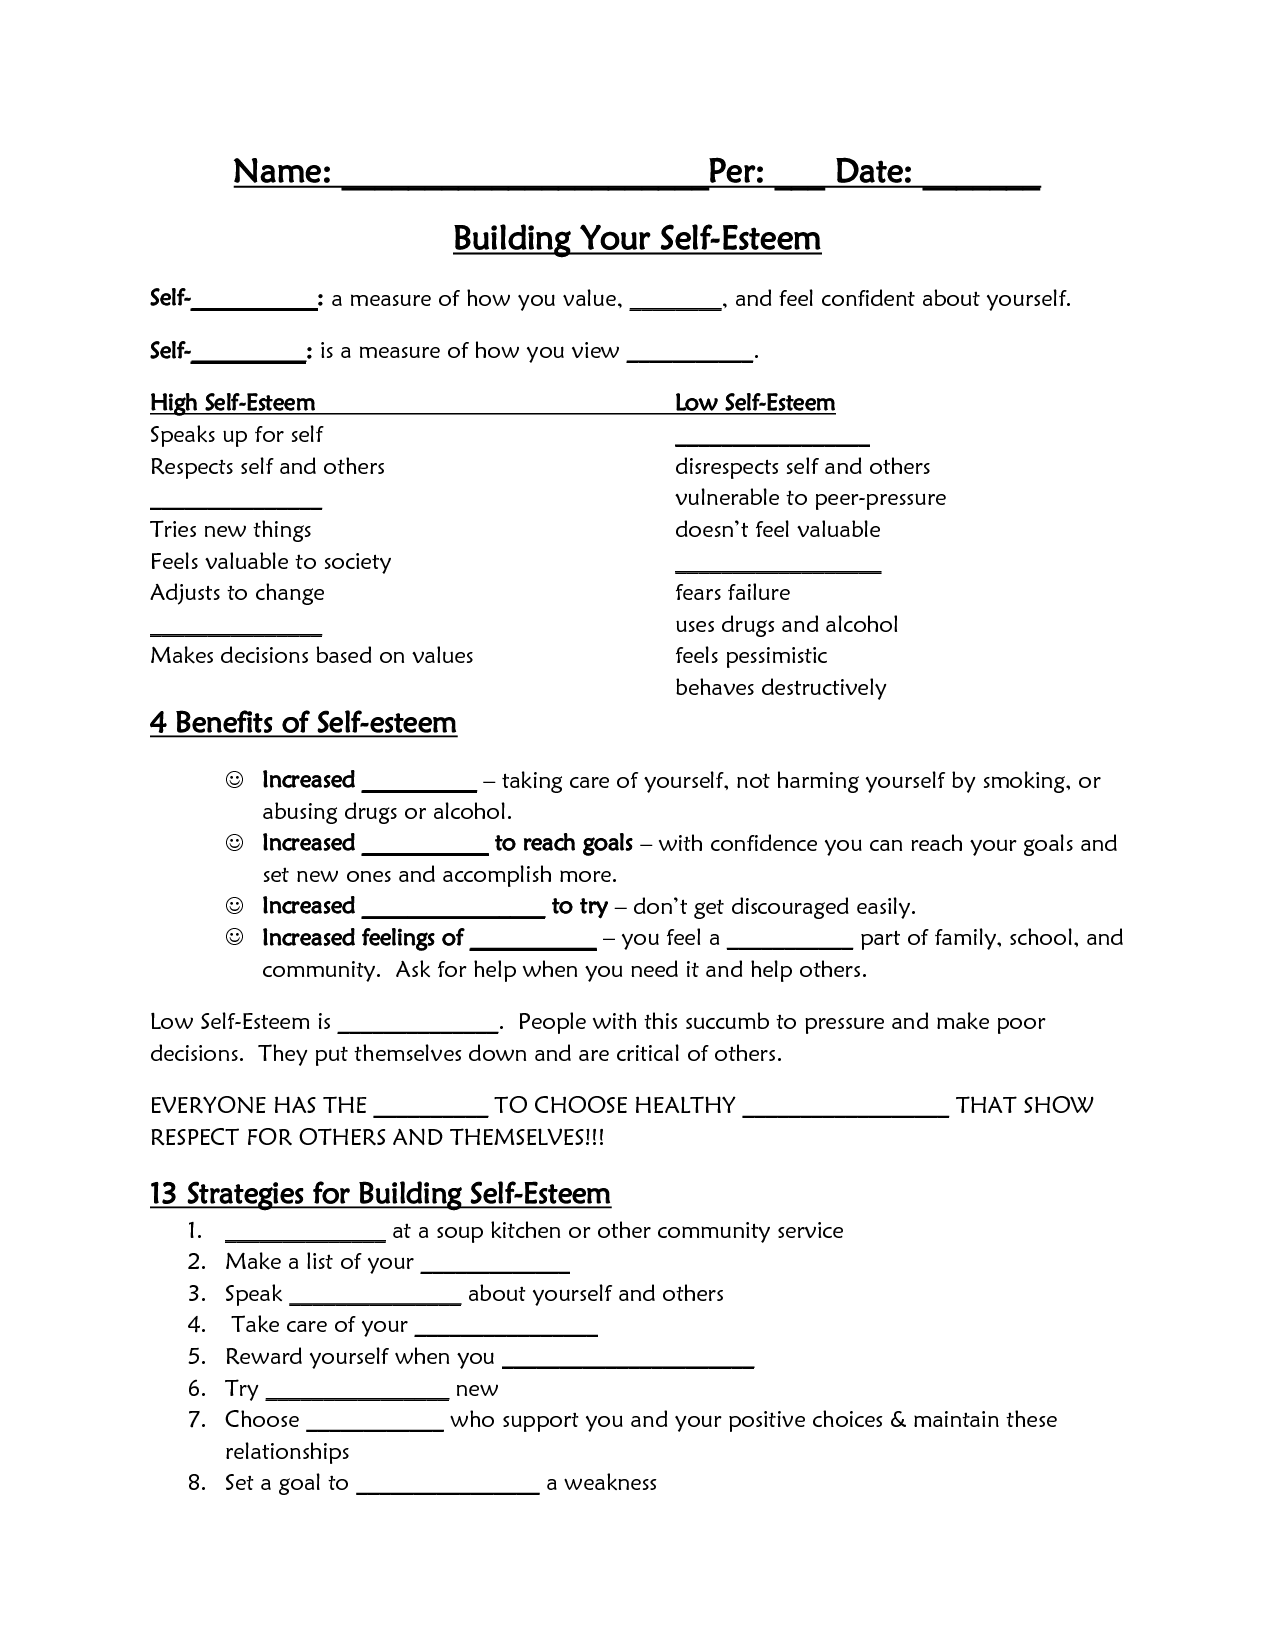 Worksheets Building Self Esteem Worksheets self esteem worksheet google search confidence tips search